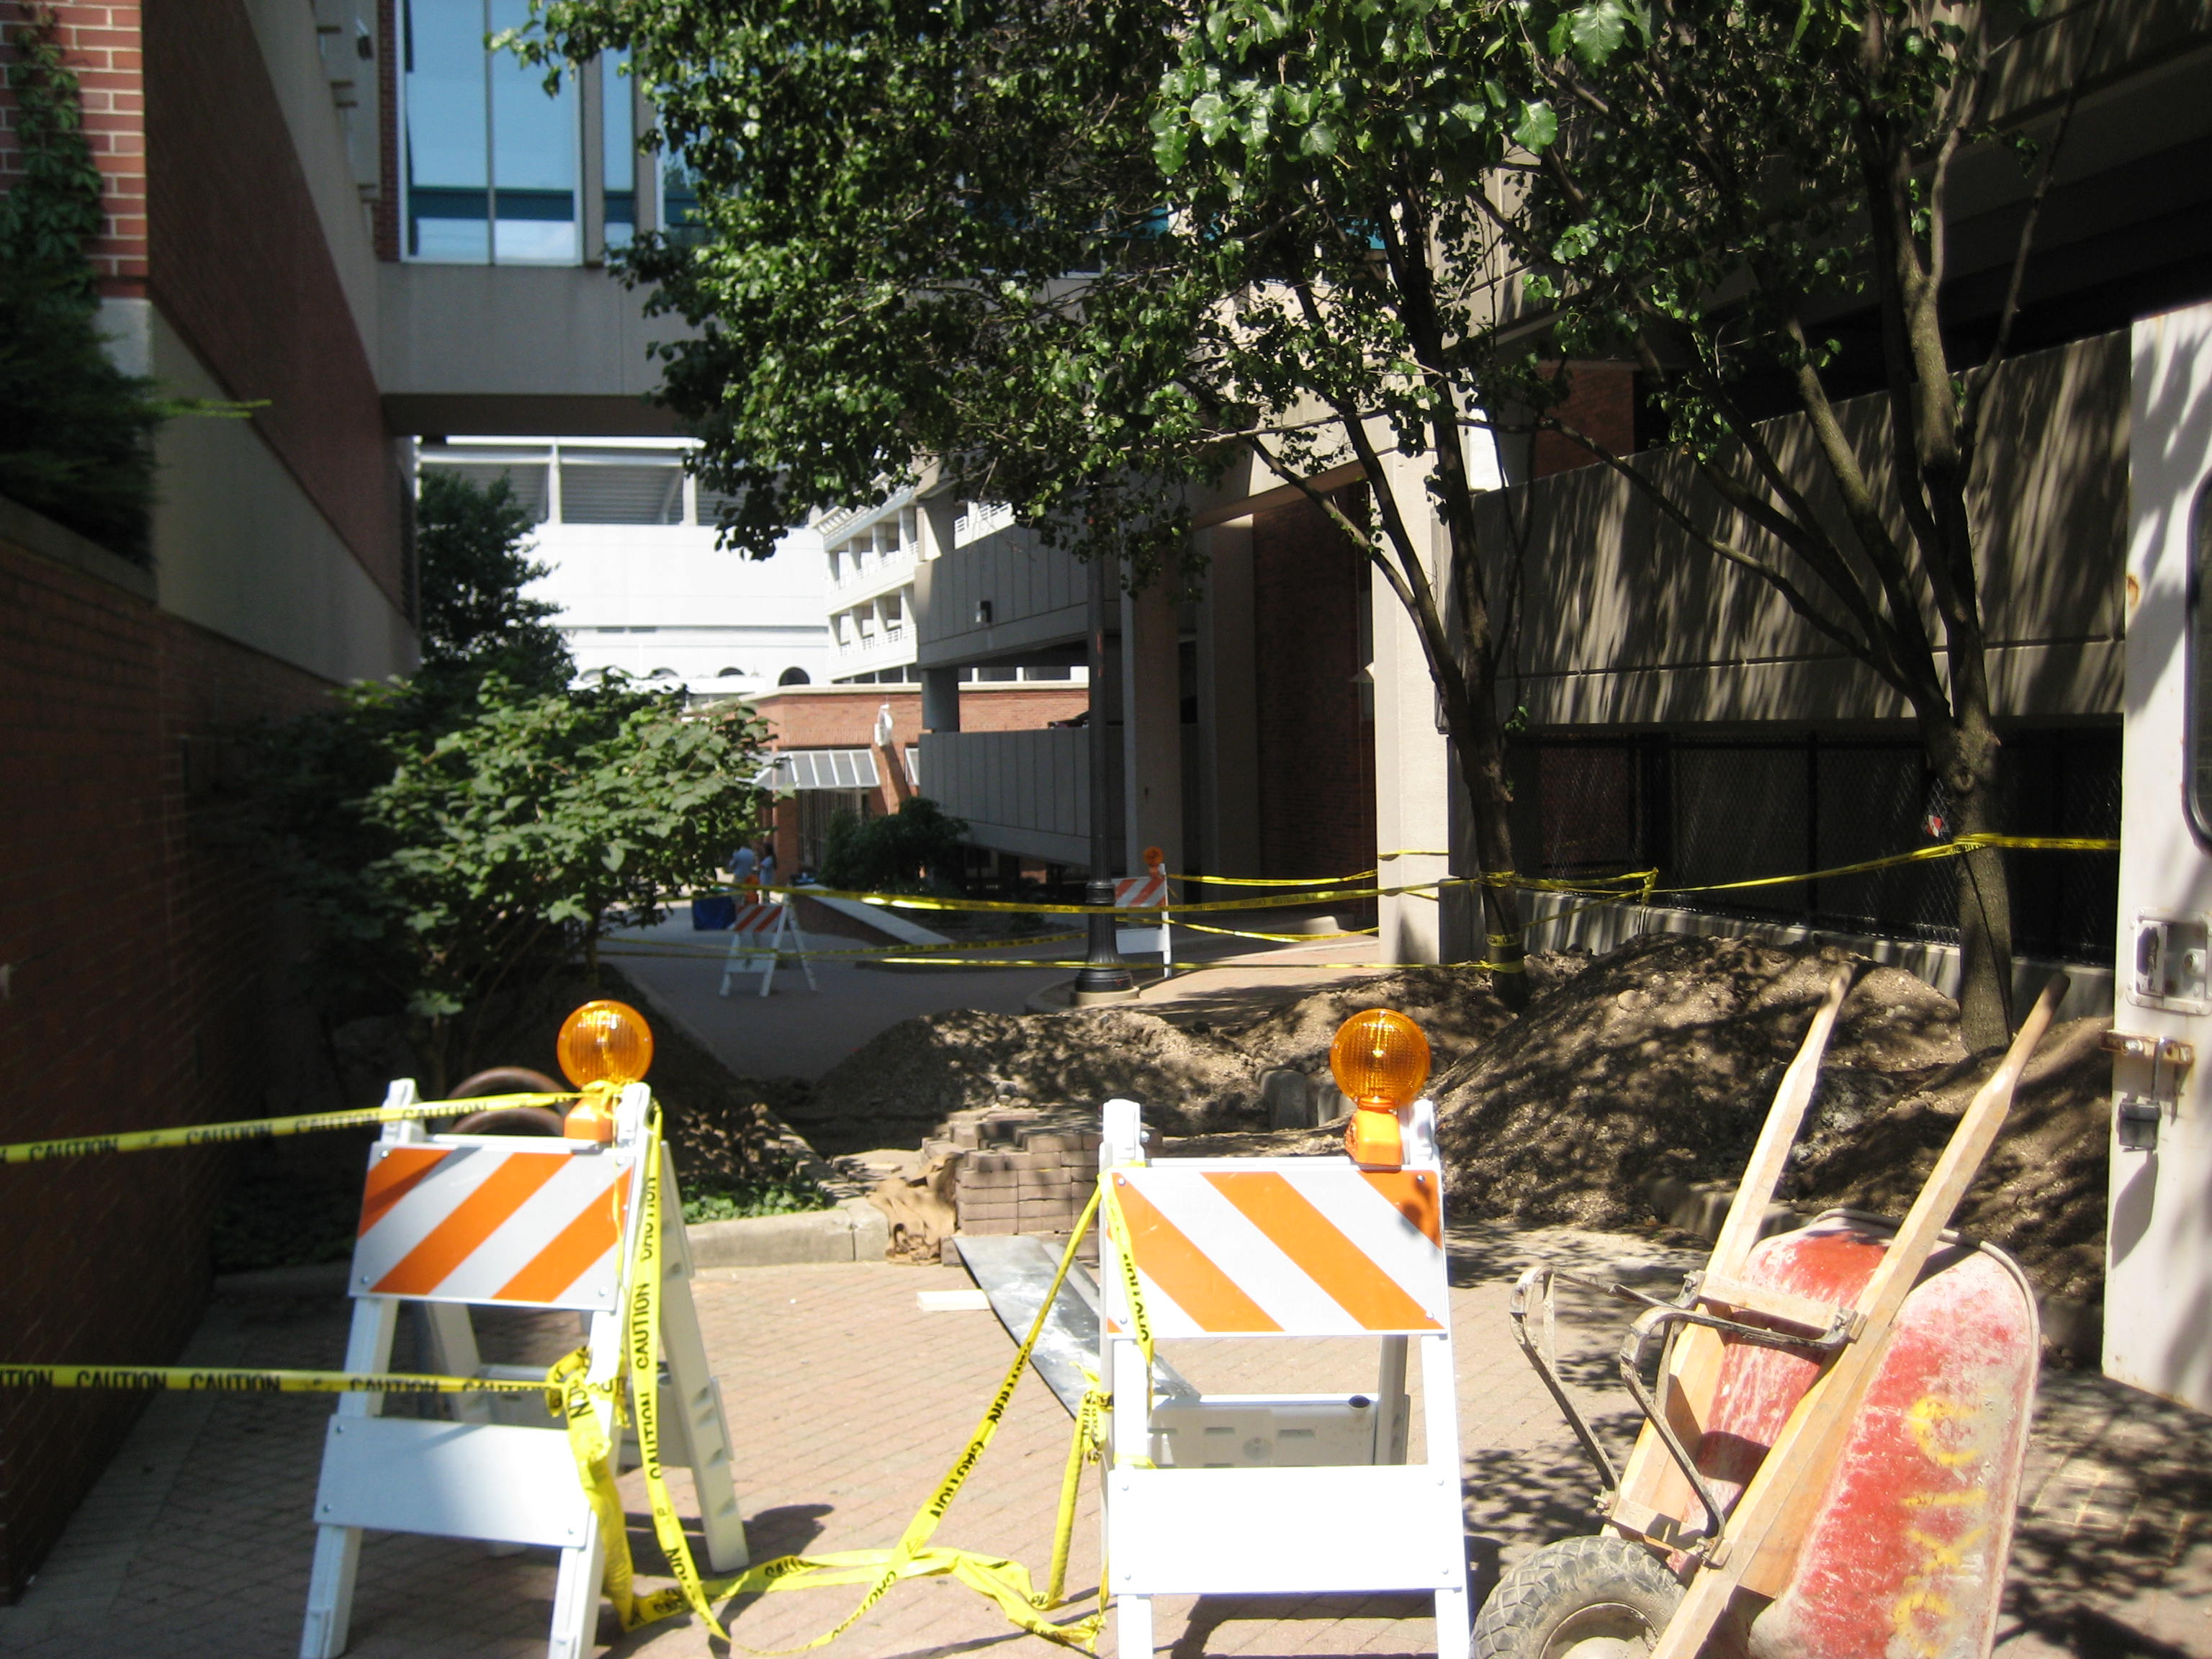 Construction in front of Dreese Lab